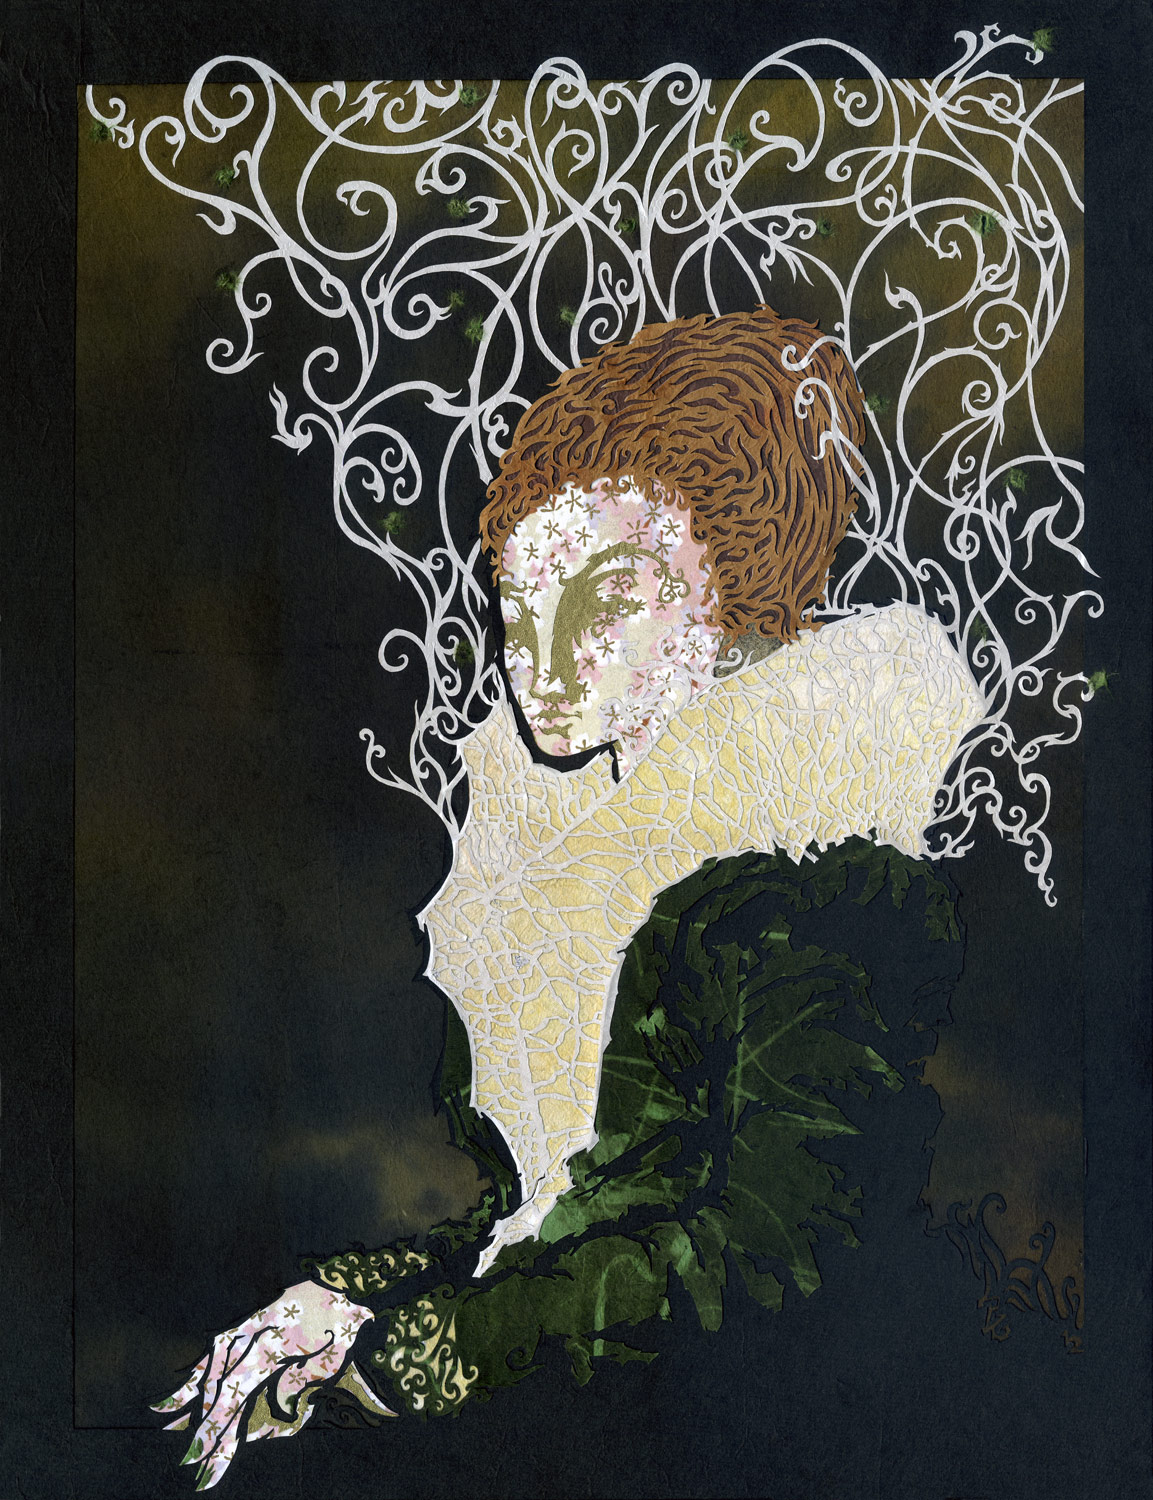 ⊛  Portrait of Lady in Green   ⊛ cut + torn washi + chiyogami paper / wood  ⊛ 13.8 x 10.6 in / 350 x 270 mm  ⊛ private collection